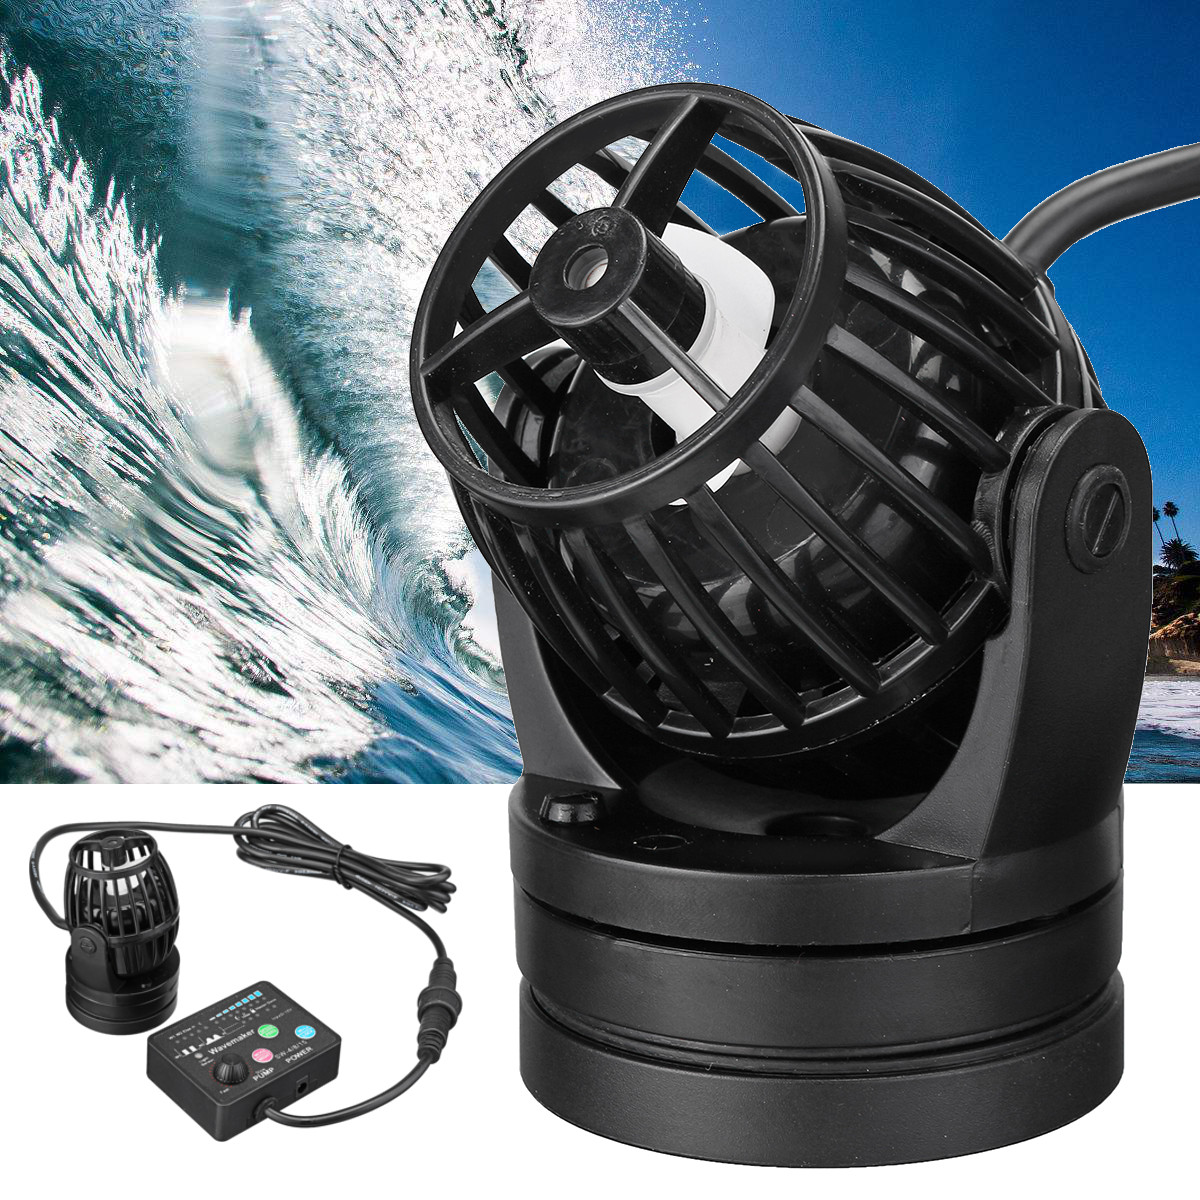 Jebao PP8 SW8 Aquarium Water Pump Fiah Tank Wave Maker with Controller